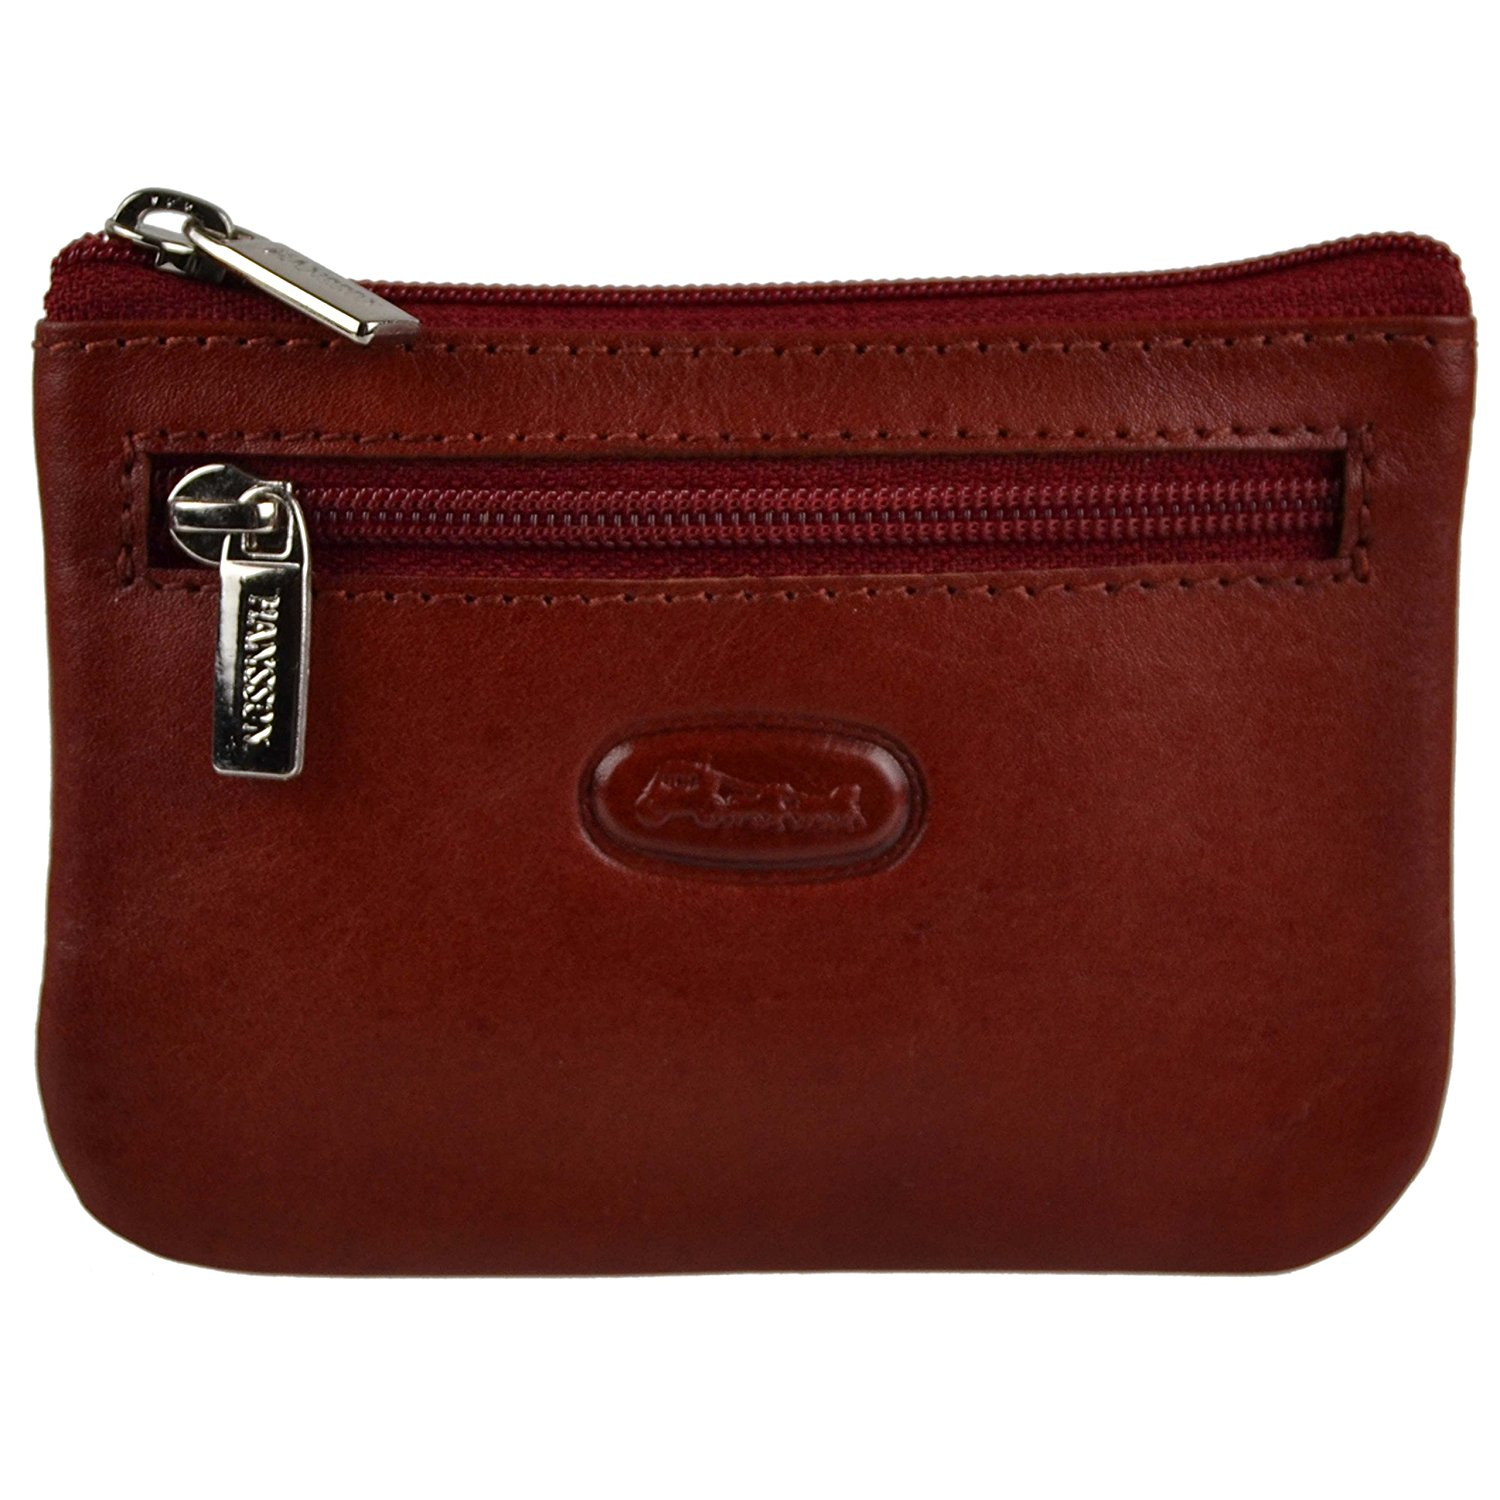 Hansson Men's Top Small Leather Coin Purse Pouch/Wallet By Key Ring